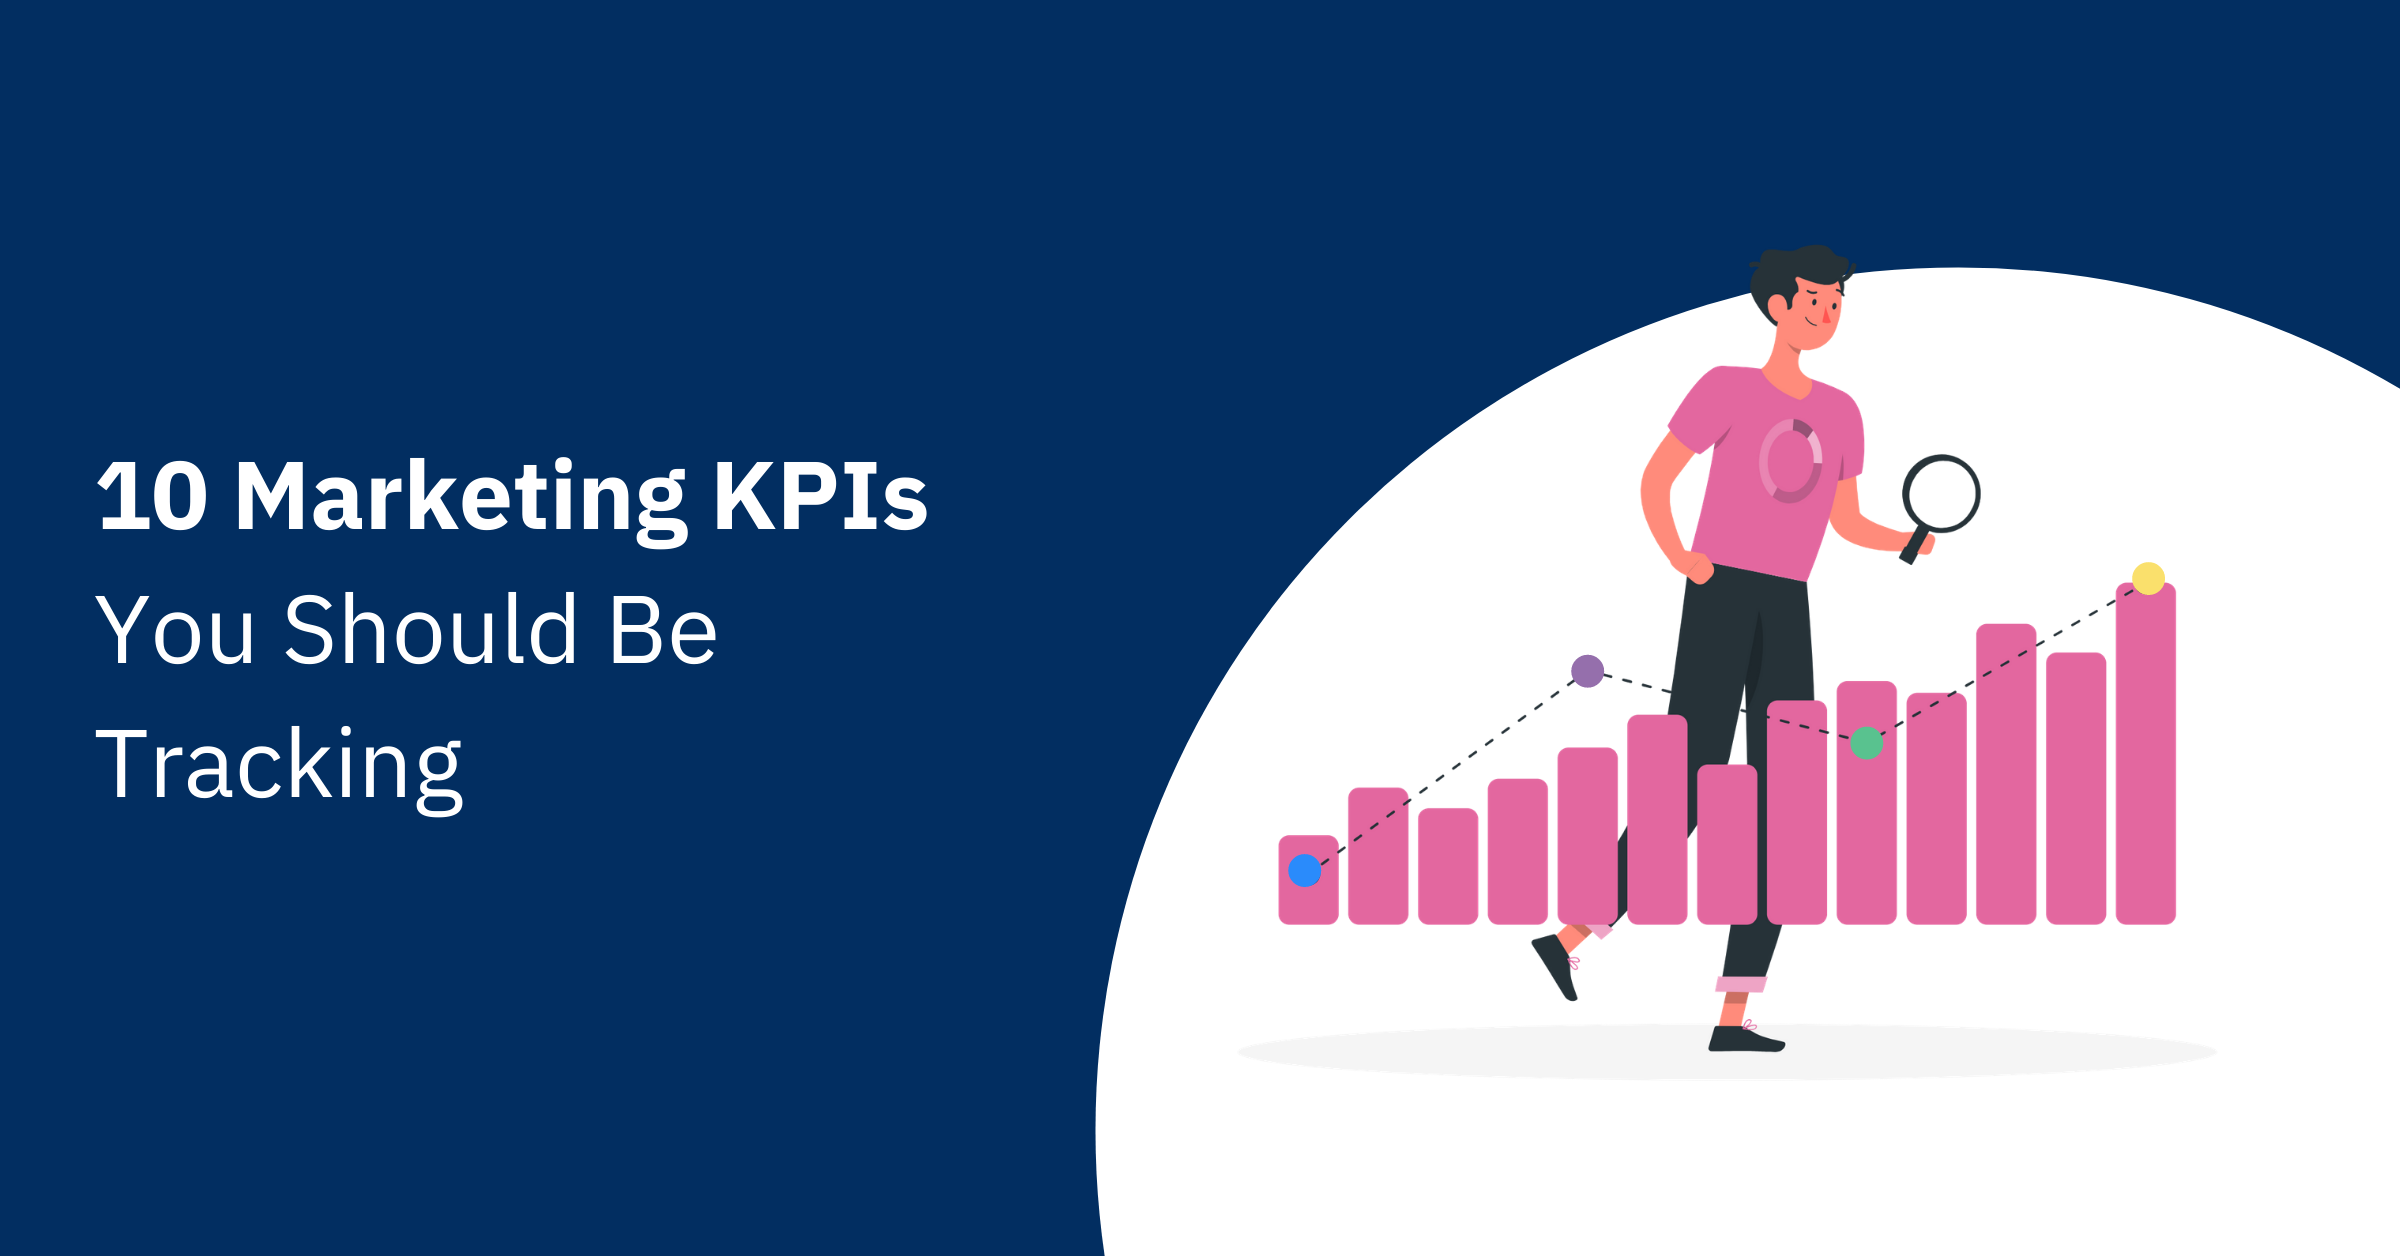 10 Marketing KPIs You Should Be Tracking